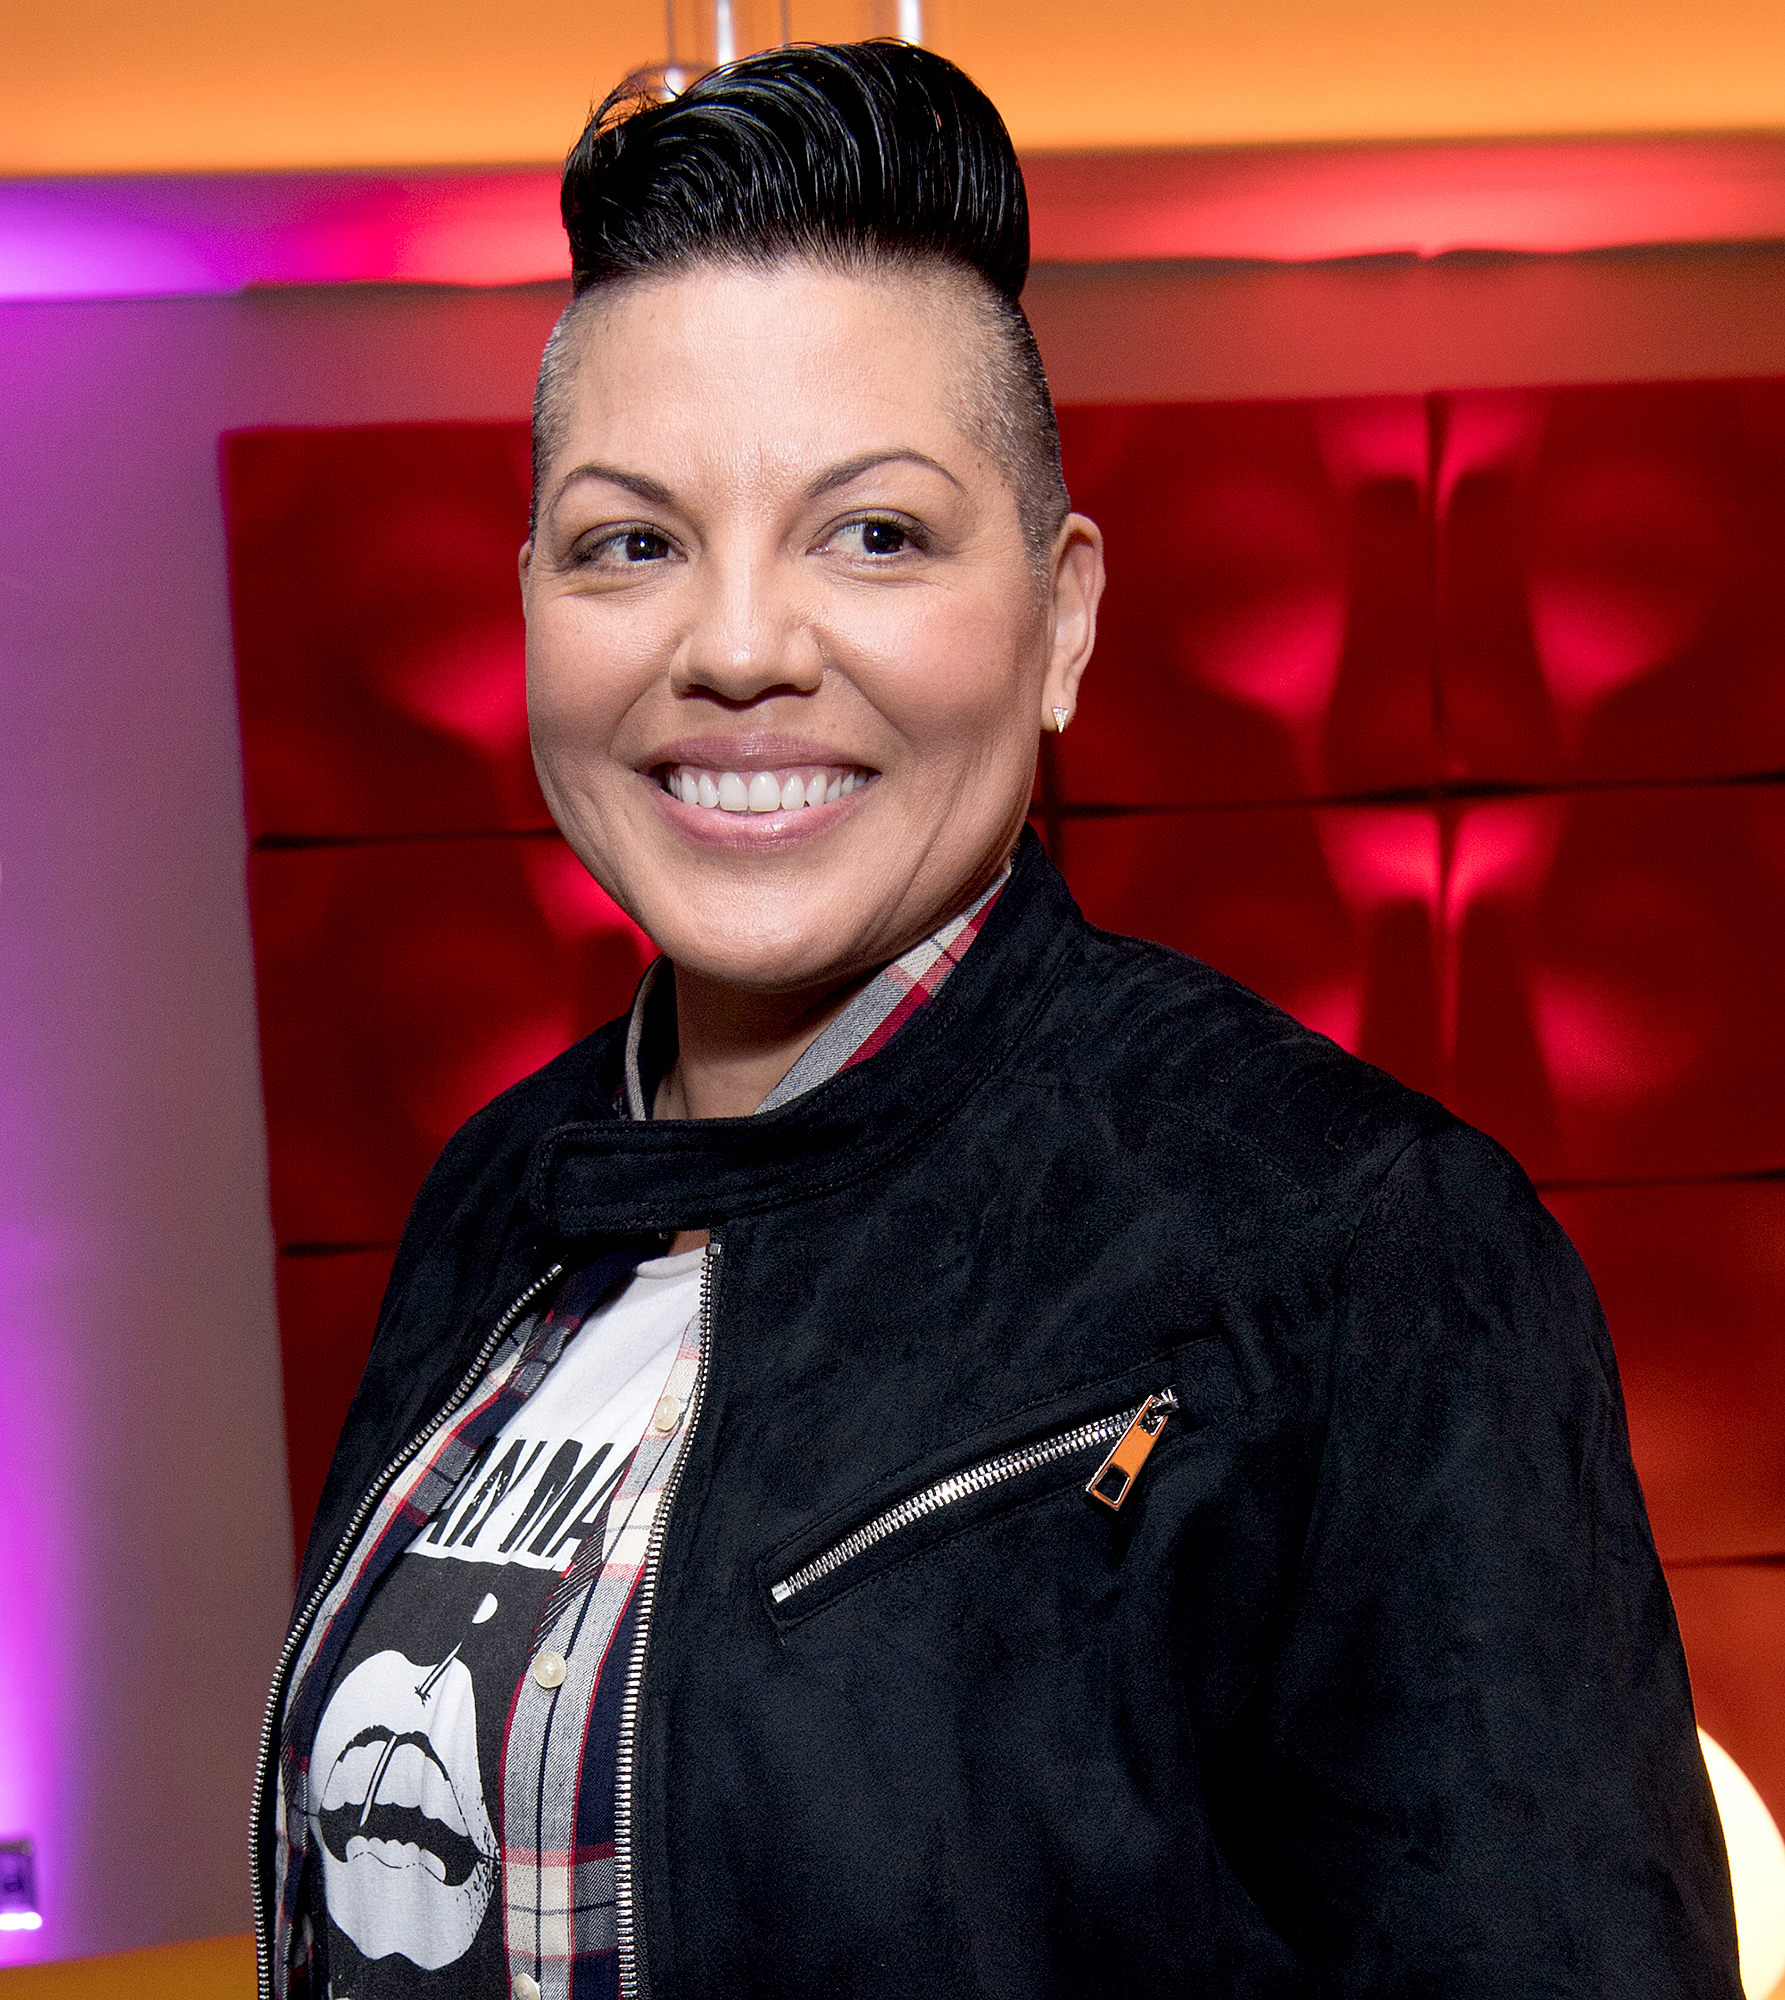 Sara-Ramirez-2018 - Sara Ramirez left Grey's Anatomy in 2016 after playing Dr. Callie Torres for 11 seasons. While Rhimes claimed in August 2018 that she invited Ramirez back to reprise her role for the season 14 finale, the Madam Secretary star told a different story.